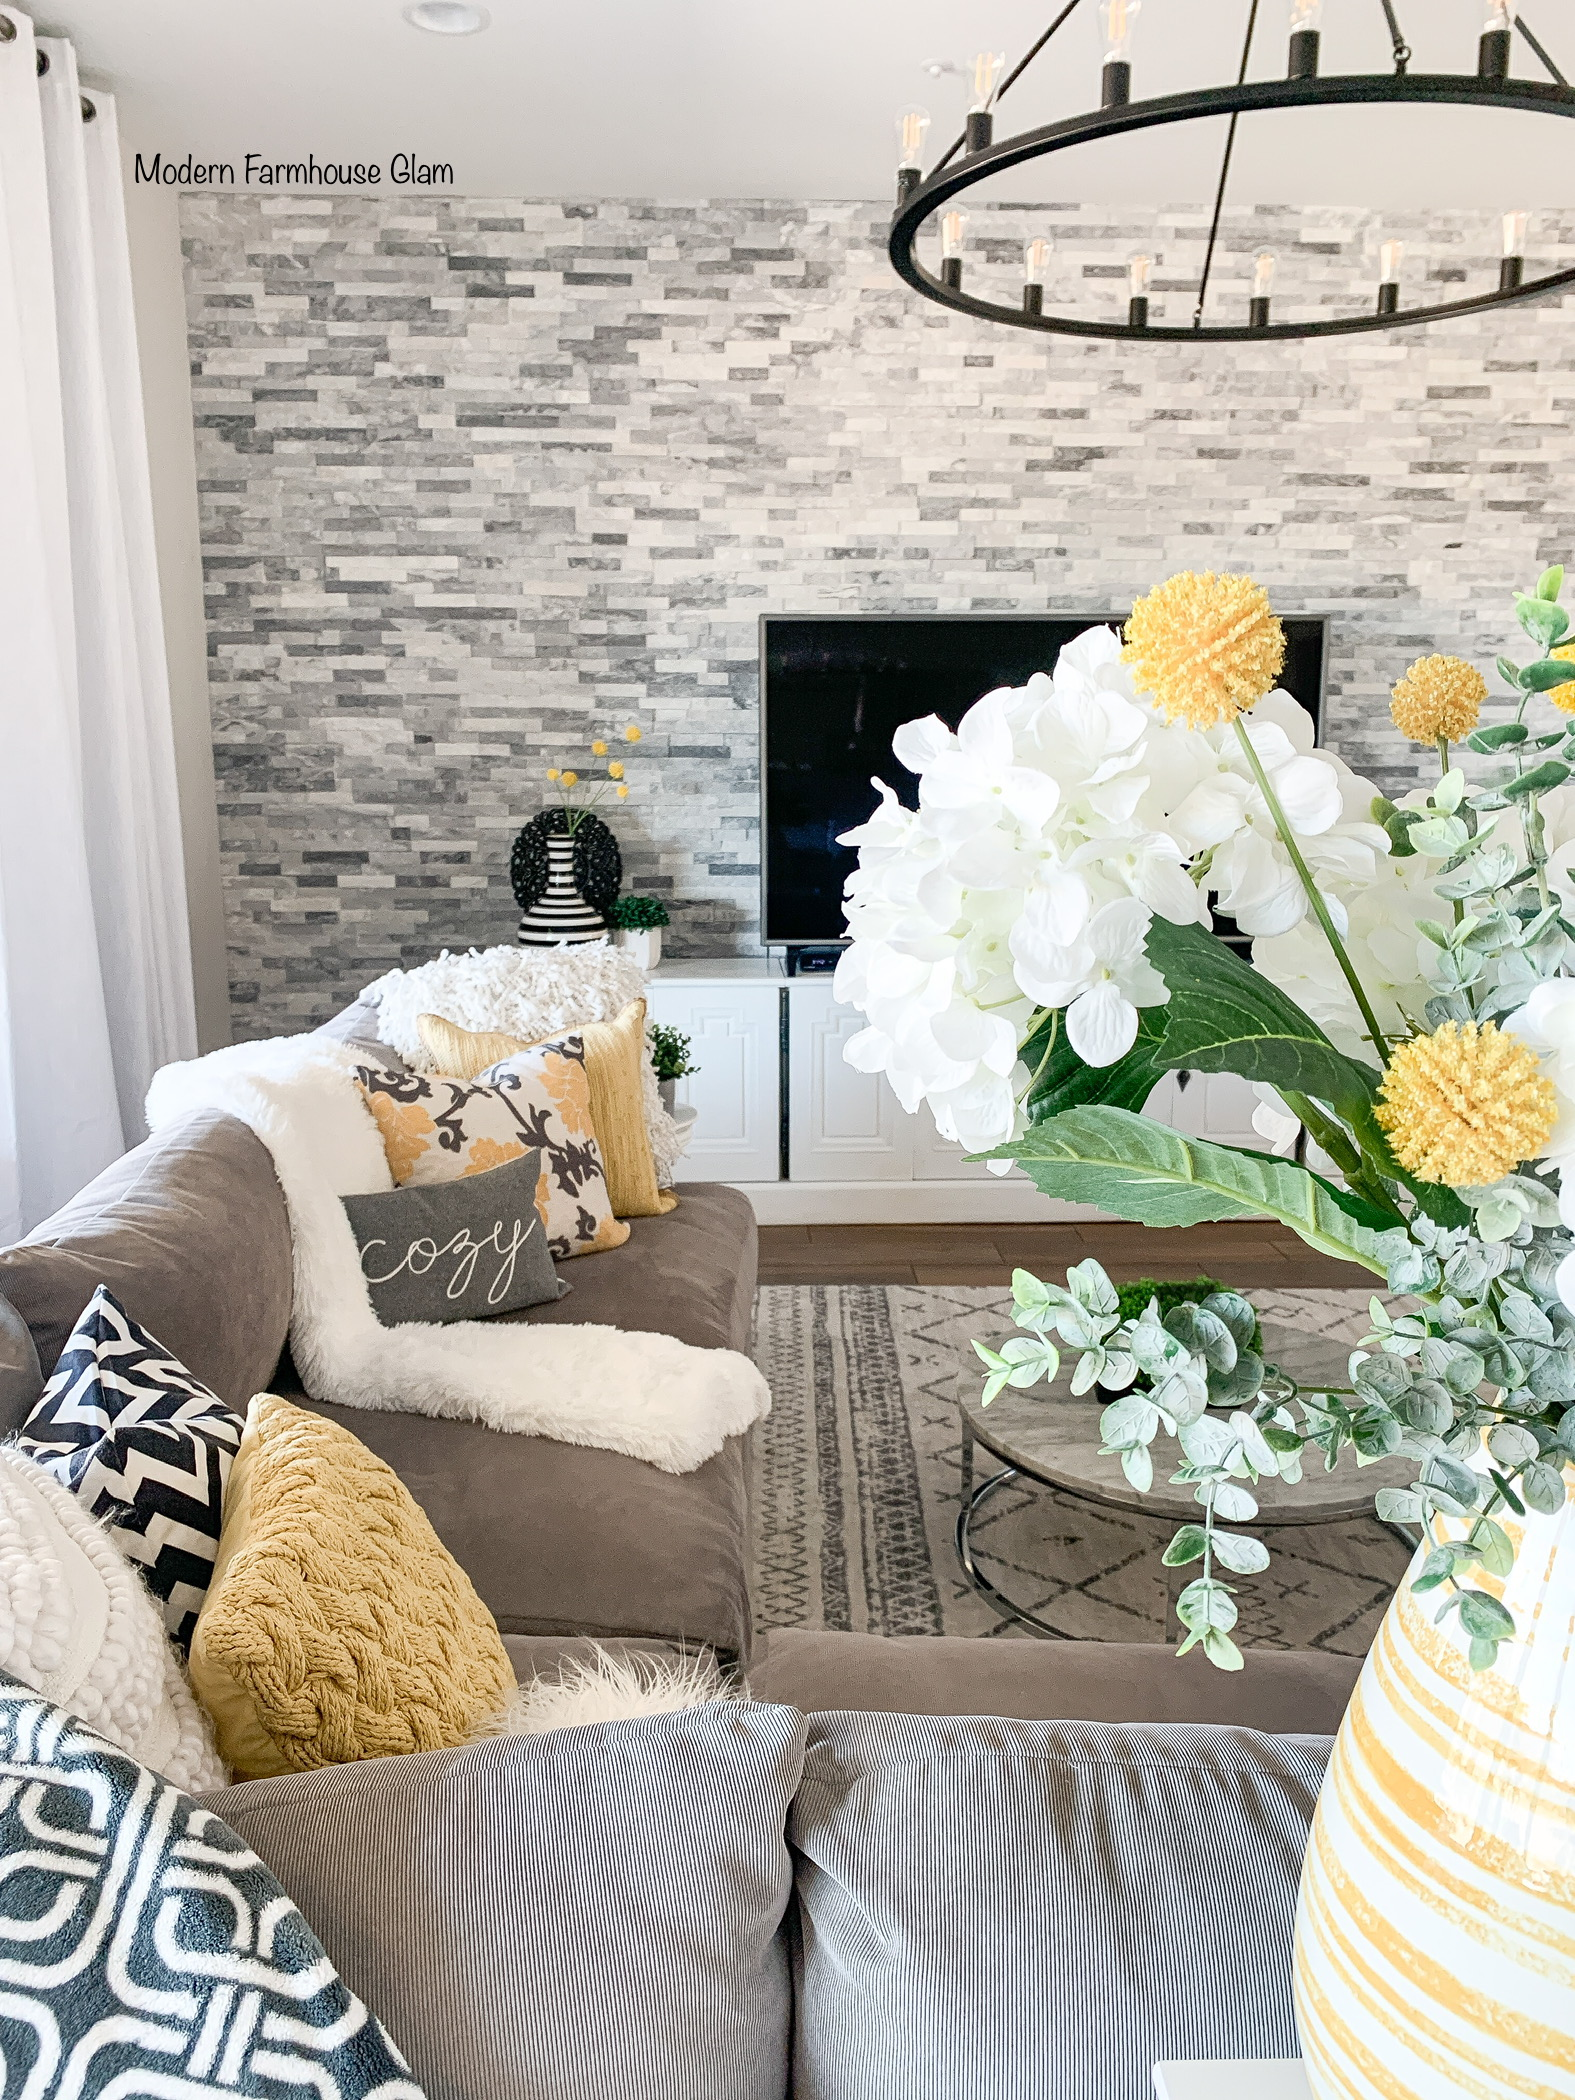 Modern Farmhouse Glam living room furniture, area rug, yellow and grey decorations, lighting, coffee table, accent table, kitchen bar stool